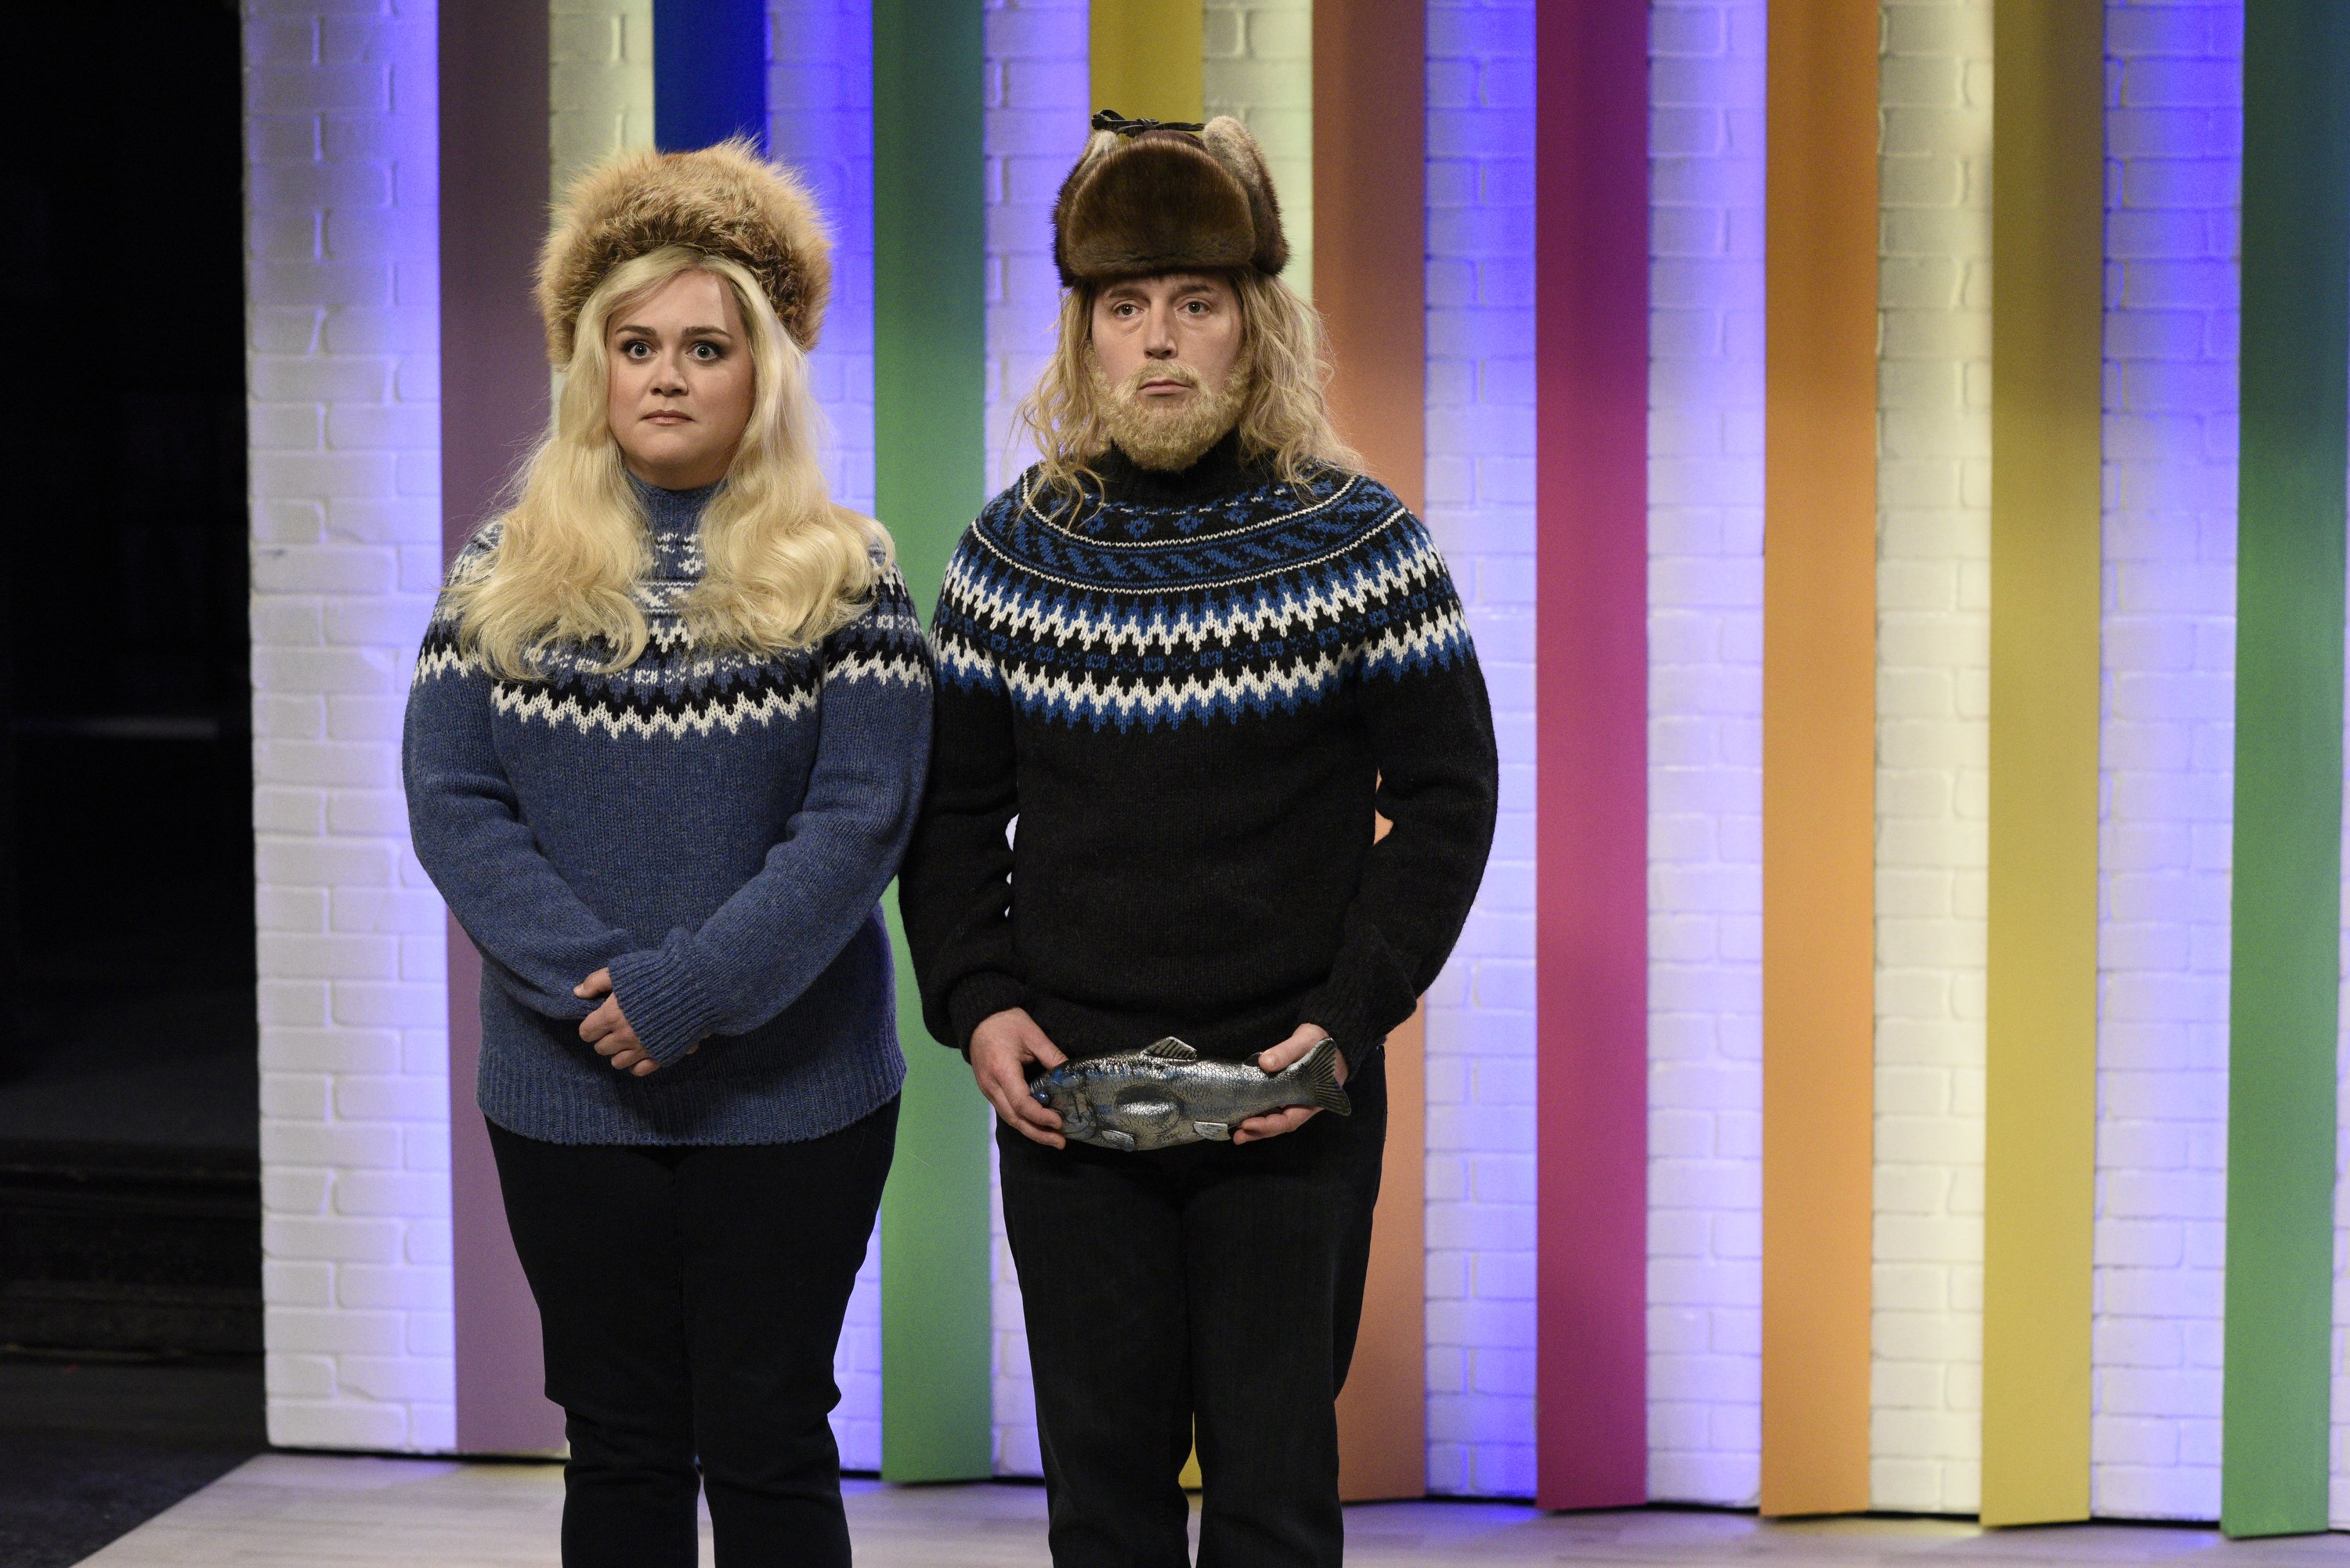 """Lauren Holt and Beck Bennett pictured on episode 1803, season 46 on """"SNL."""" 2021. 